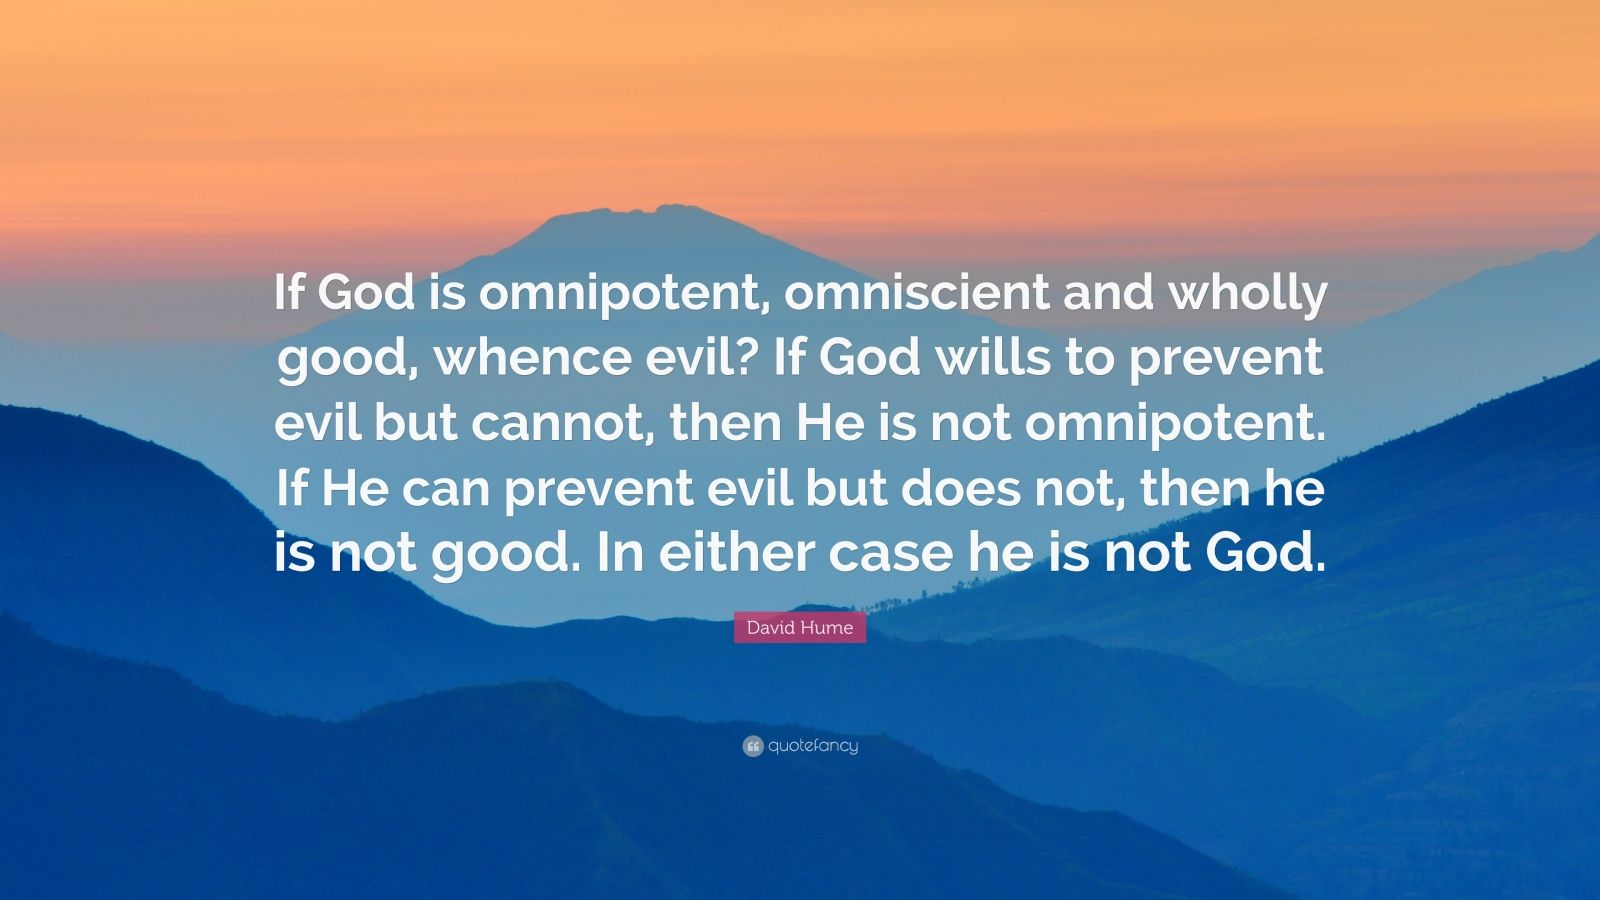 is an omnipotent god a coherent This is a study of the attributes of god, such as omniscience, omnipresence, and omnipotence if i can show that theism is incoherent or contradictory, then it cannot be true showing that theism is incoherent would disprove statement 1.